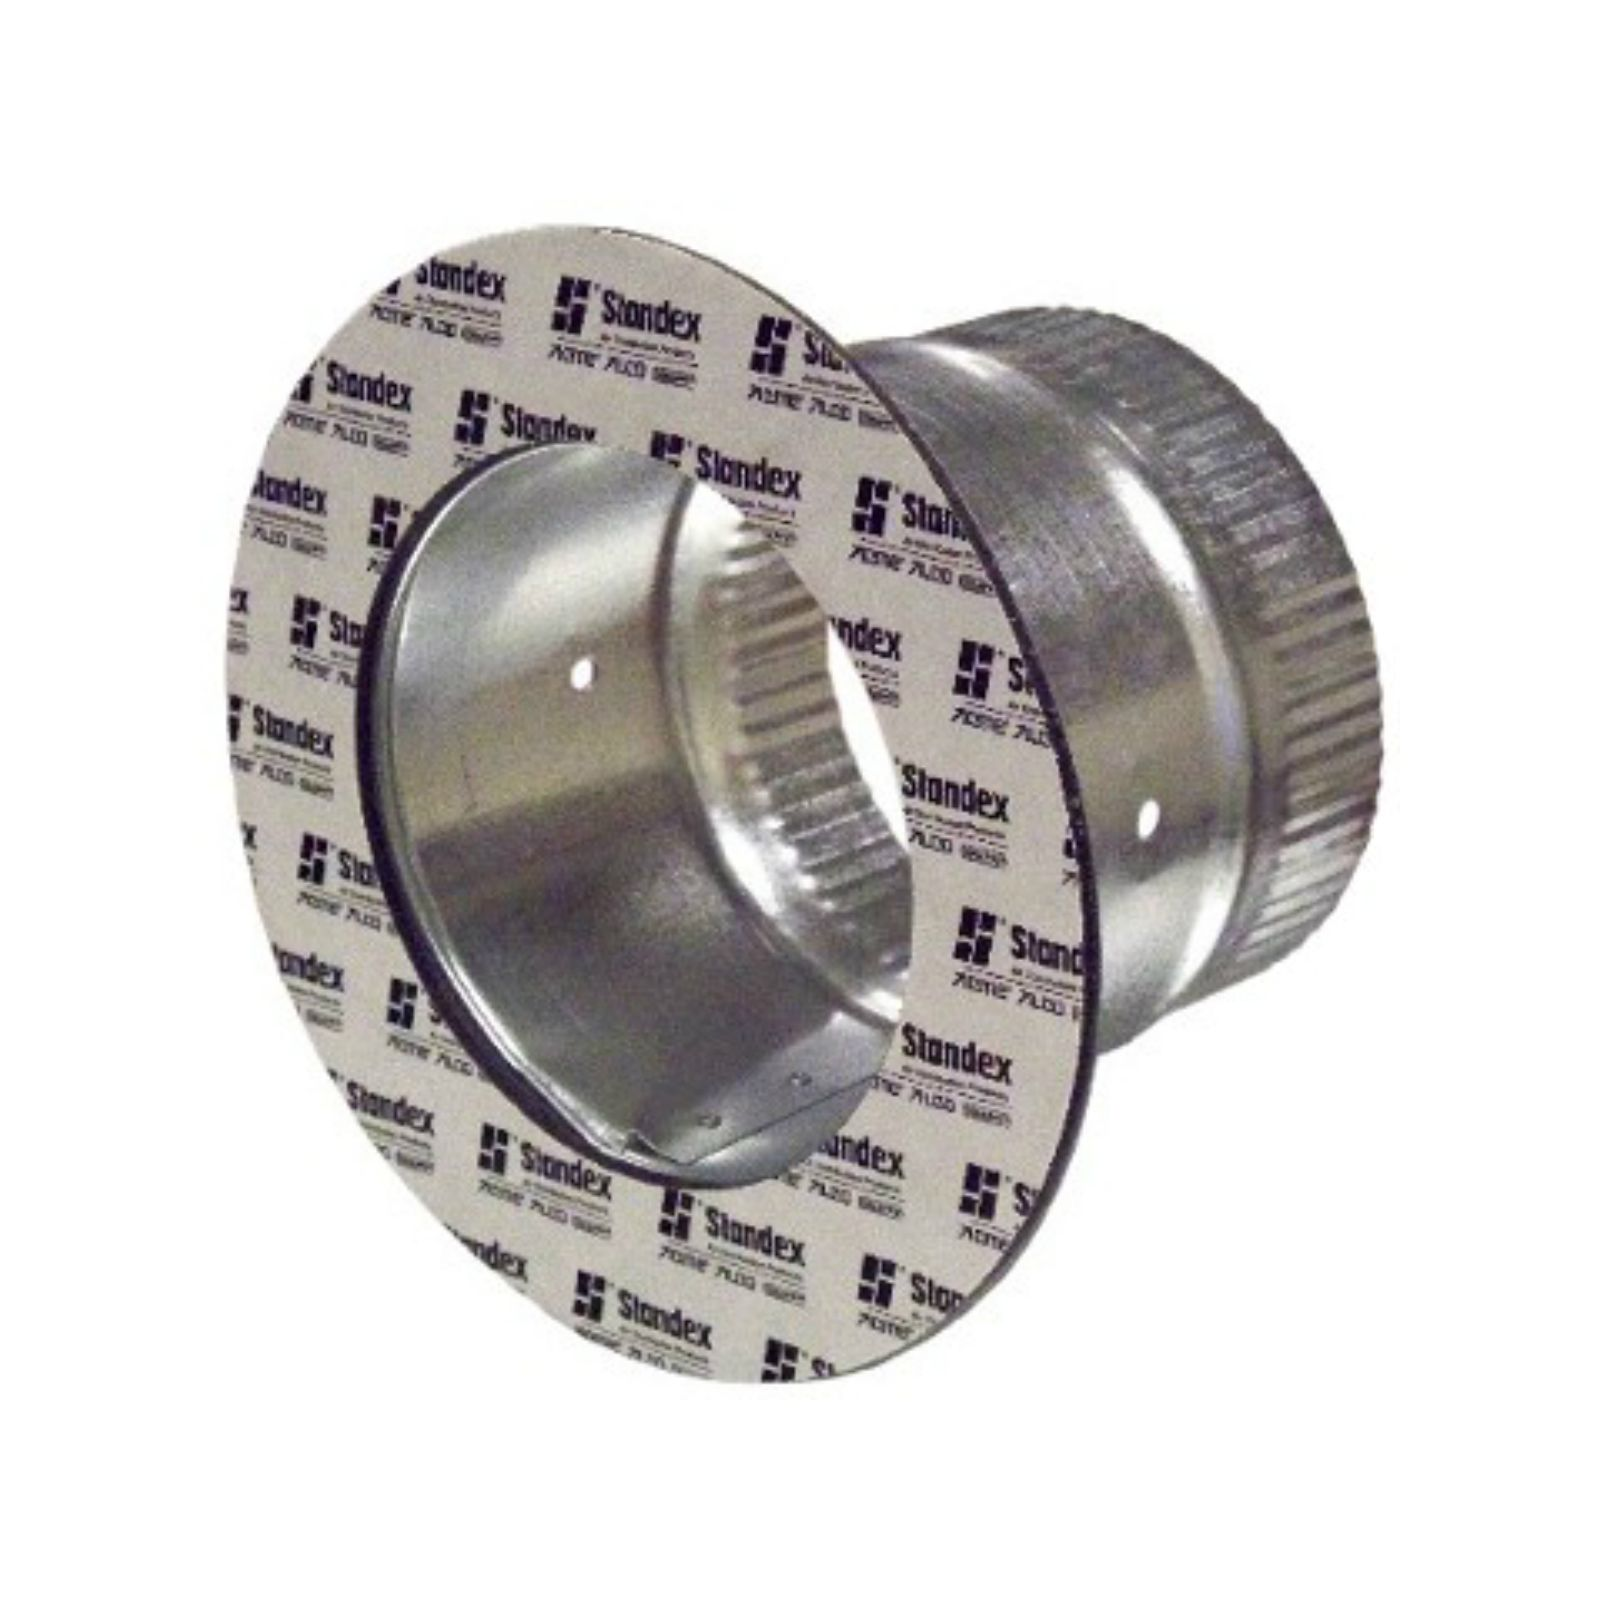 "Snappy 167-12 - #167 - Adhesive Takeoff, 6"" Tube Length, 1 1/2"" Flange, for 12"" Duct"